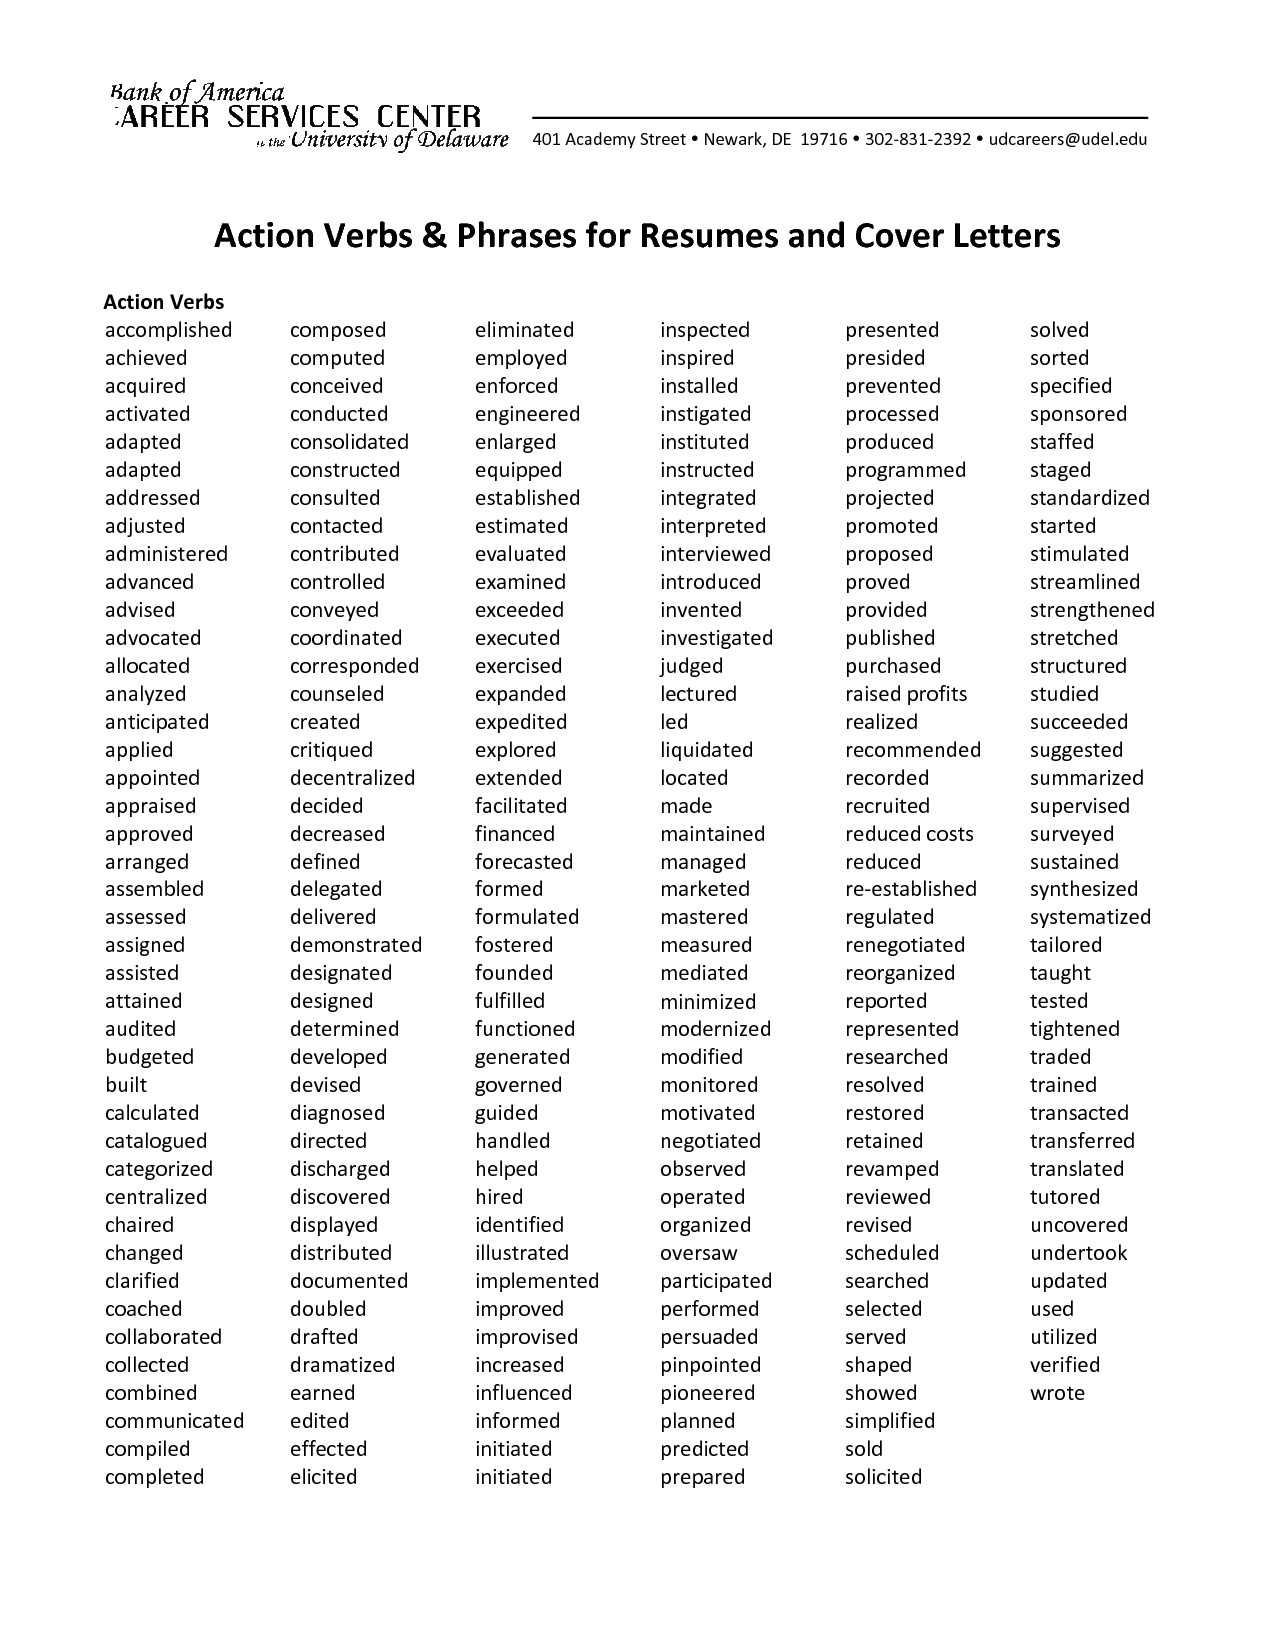 action verbs phrases for resumes and cover letters - Resume Action Words